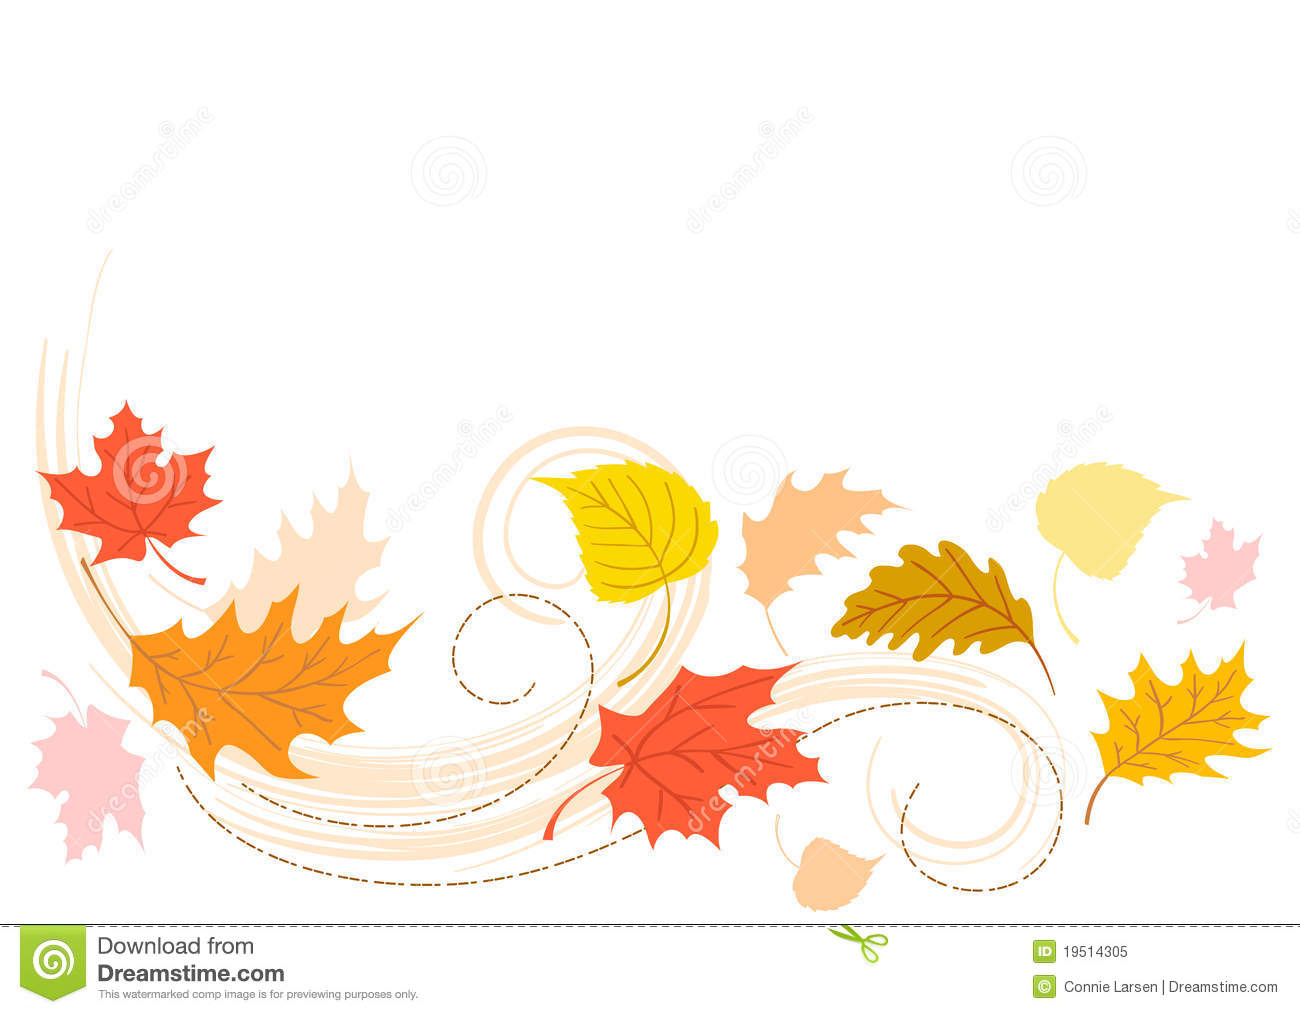 Wind Blowing Leaves Stock Illustrations 738 Wind Blowing Leaves Stock Illustrations Vectors Clipart Dreamstime